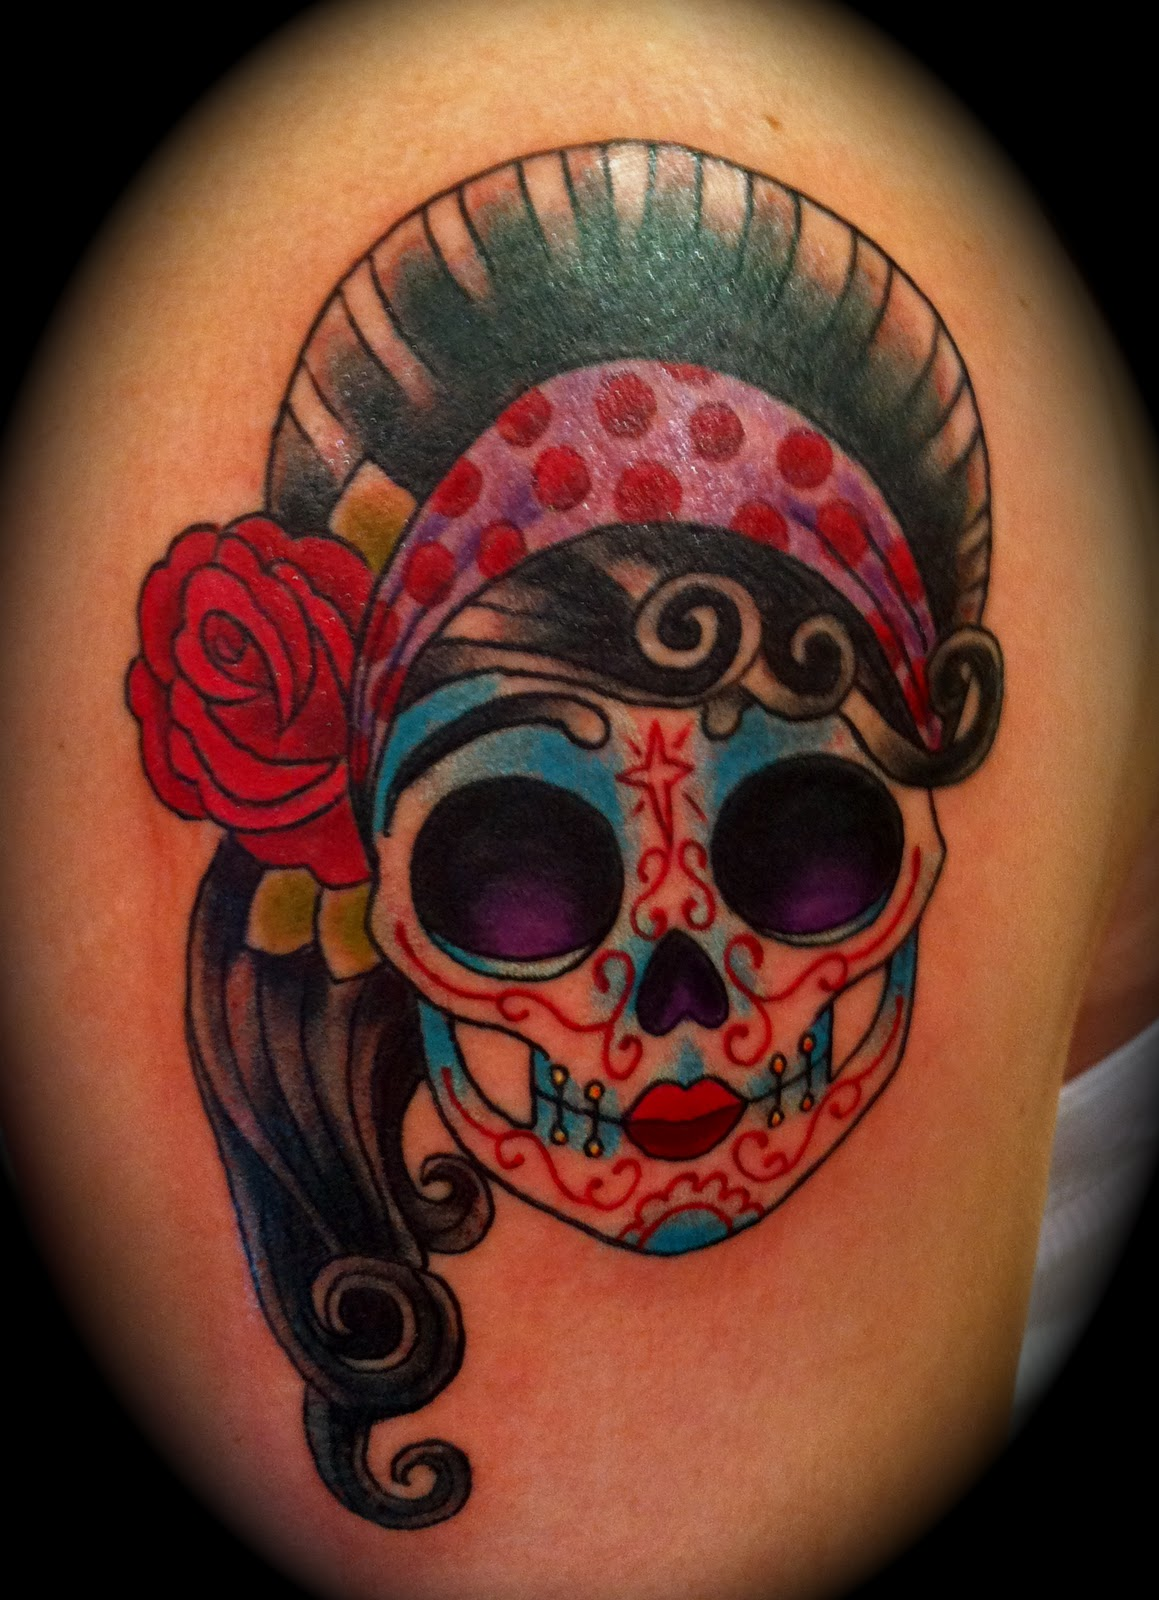 Portrait Skulls Tattoos - LiLz.eu - Tattoo DE